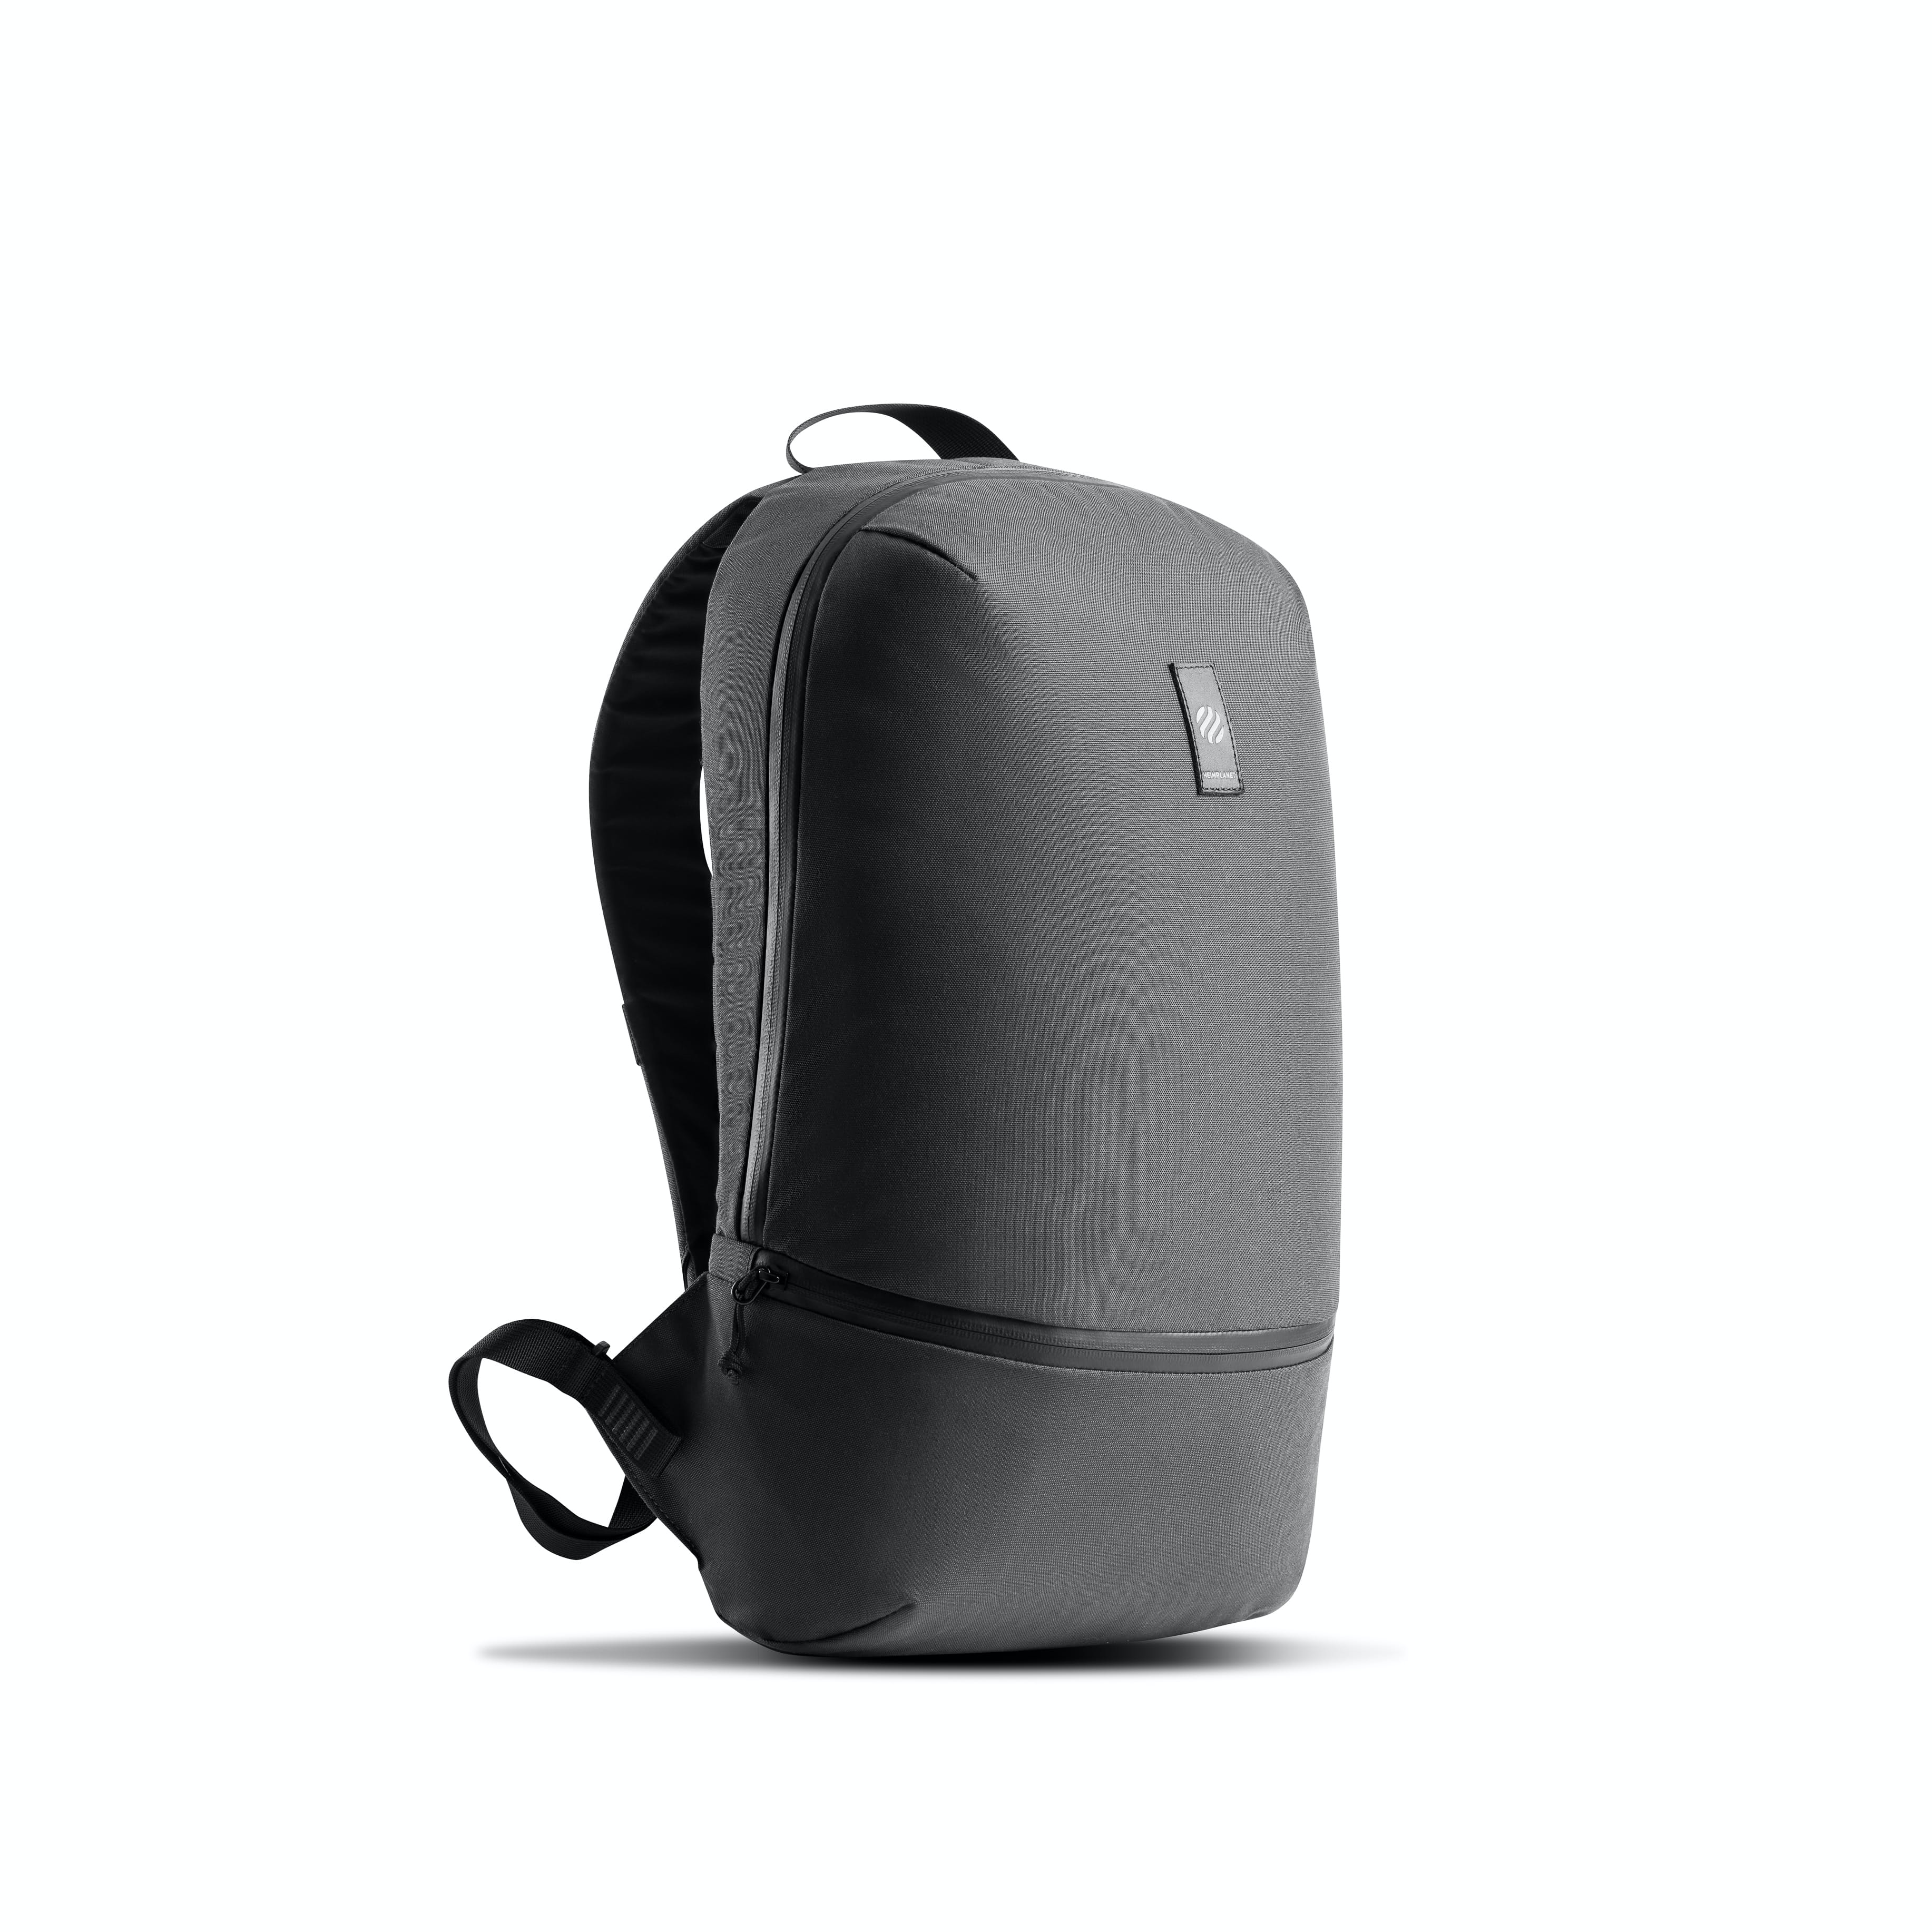 Wh8ax88khw heimplanet monolith minimal pack 18l 0 original